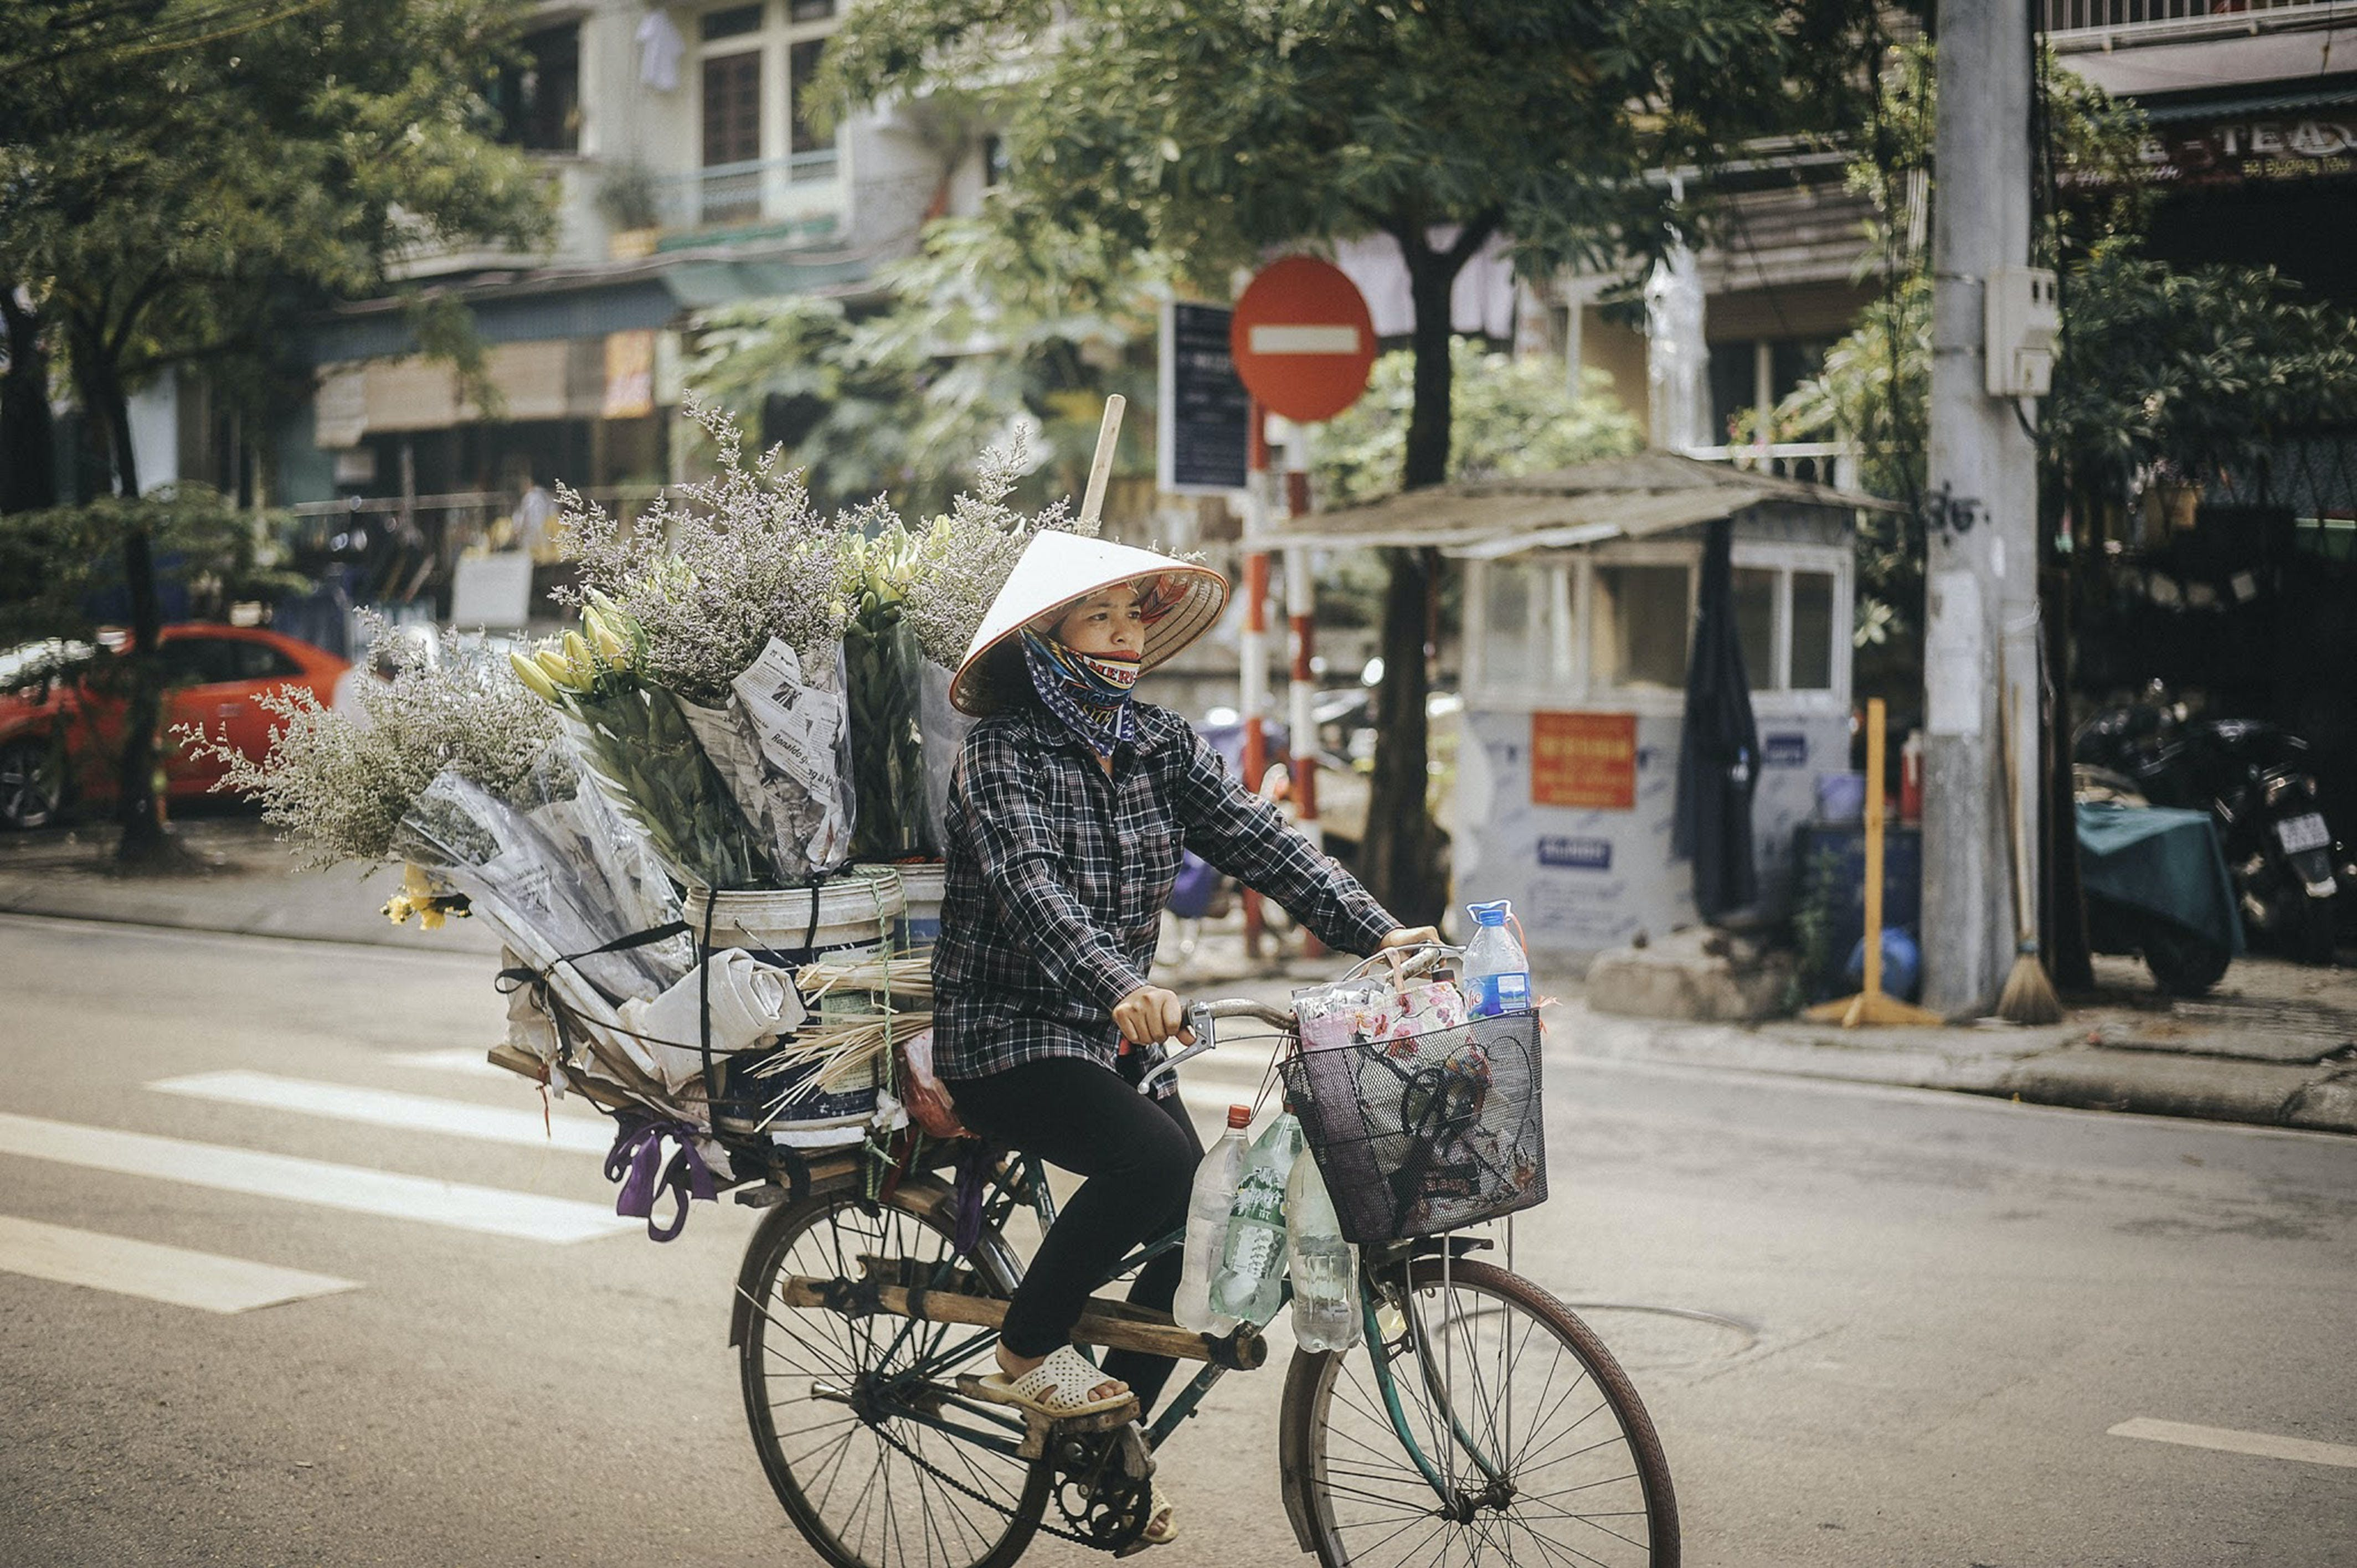 Woman Riding on Bike With Flowers on Her Bicycle Luggage Rack